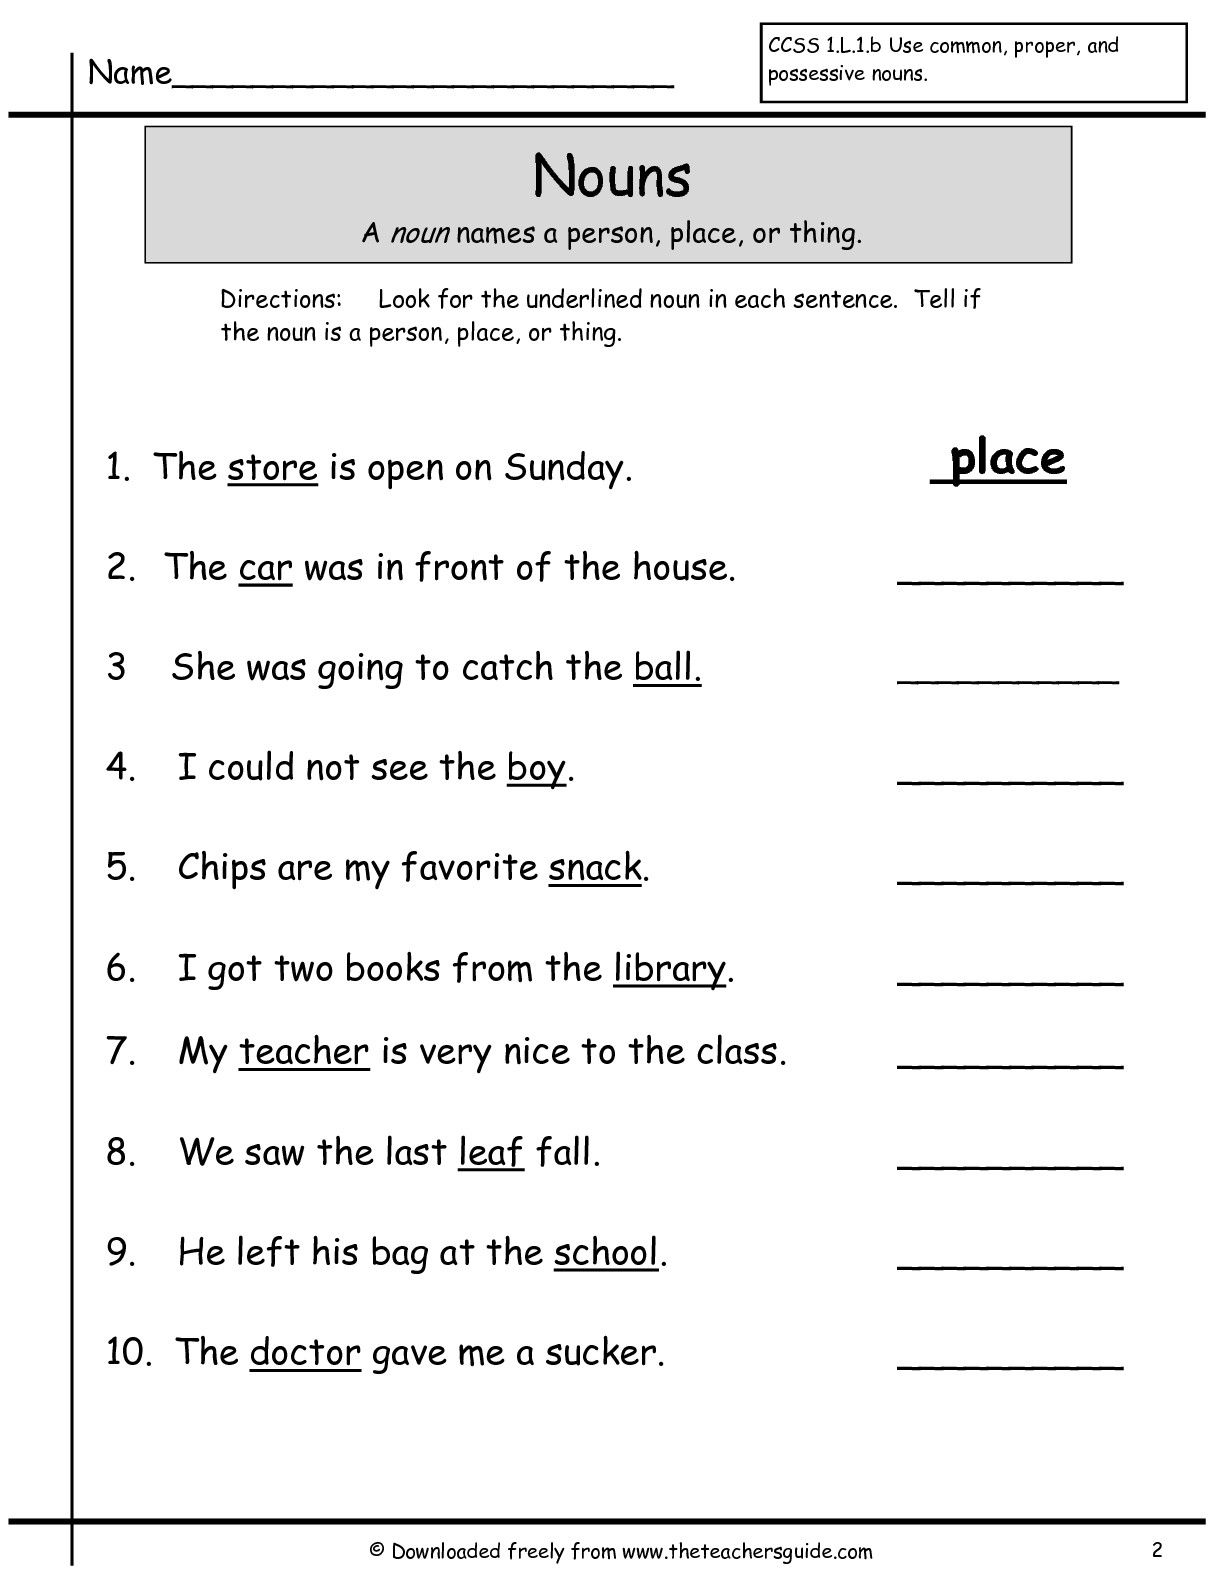 nouns grade 1 worksheets - Google Search   Nouns worksheet [ 1584 x 1224 Pixel ]